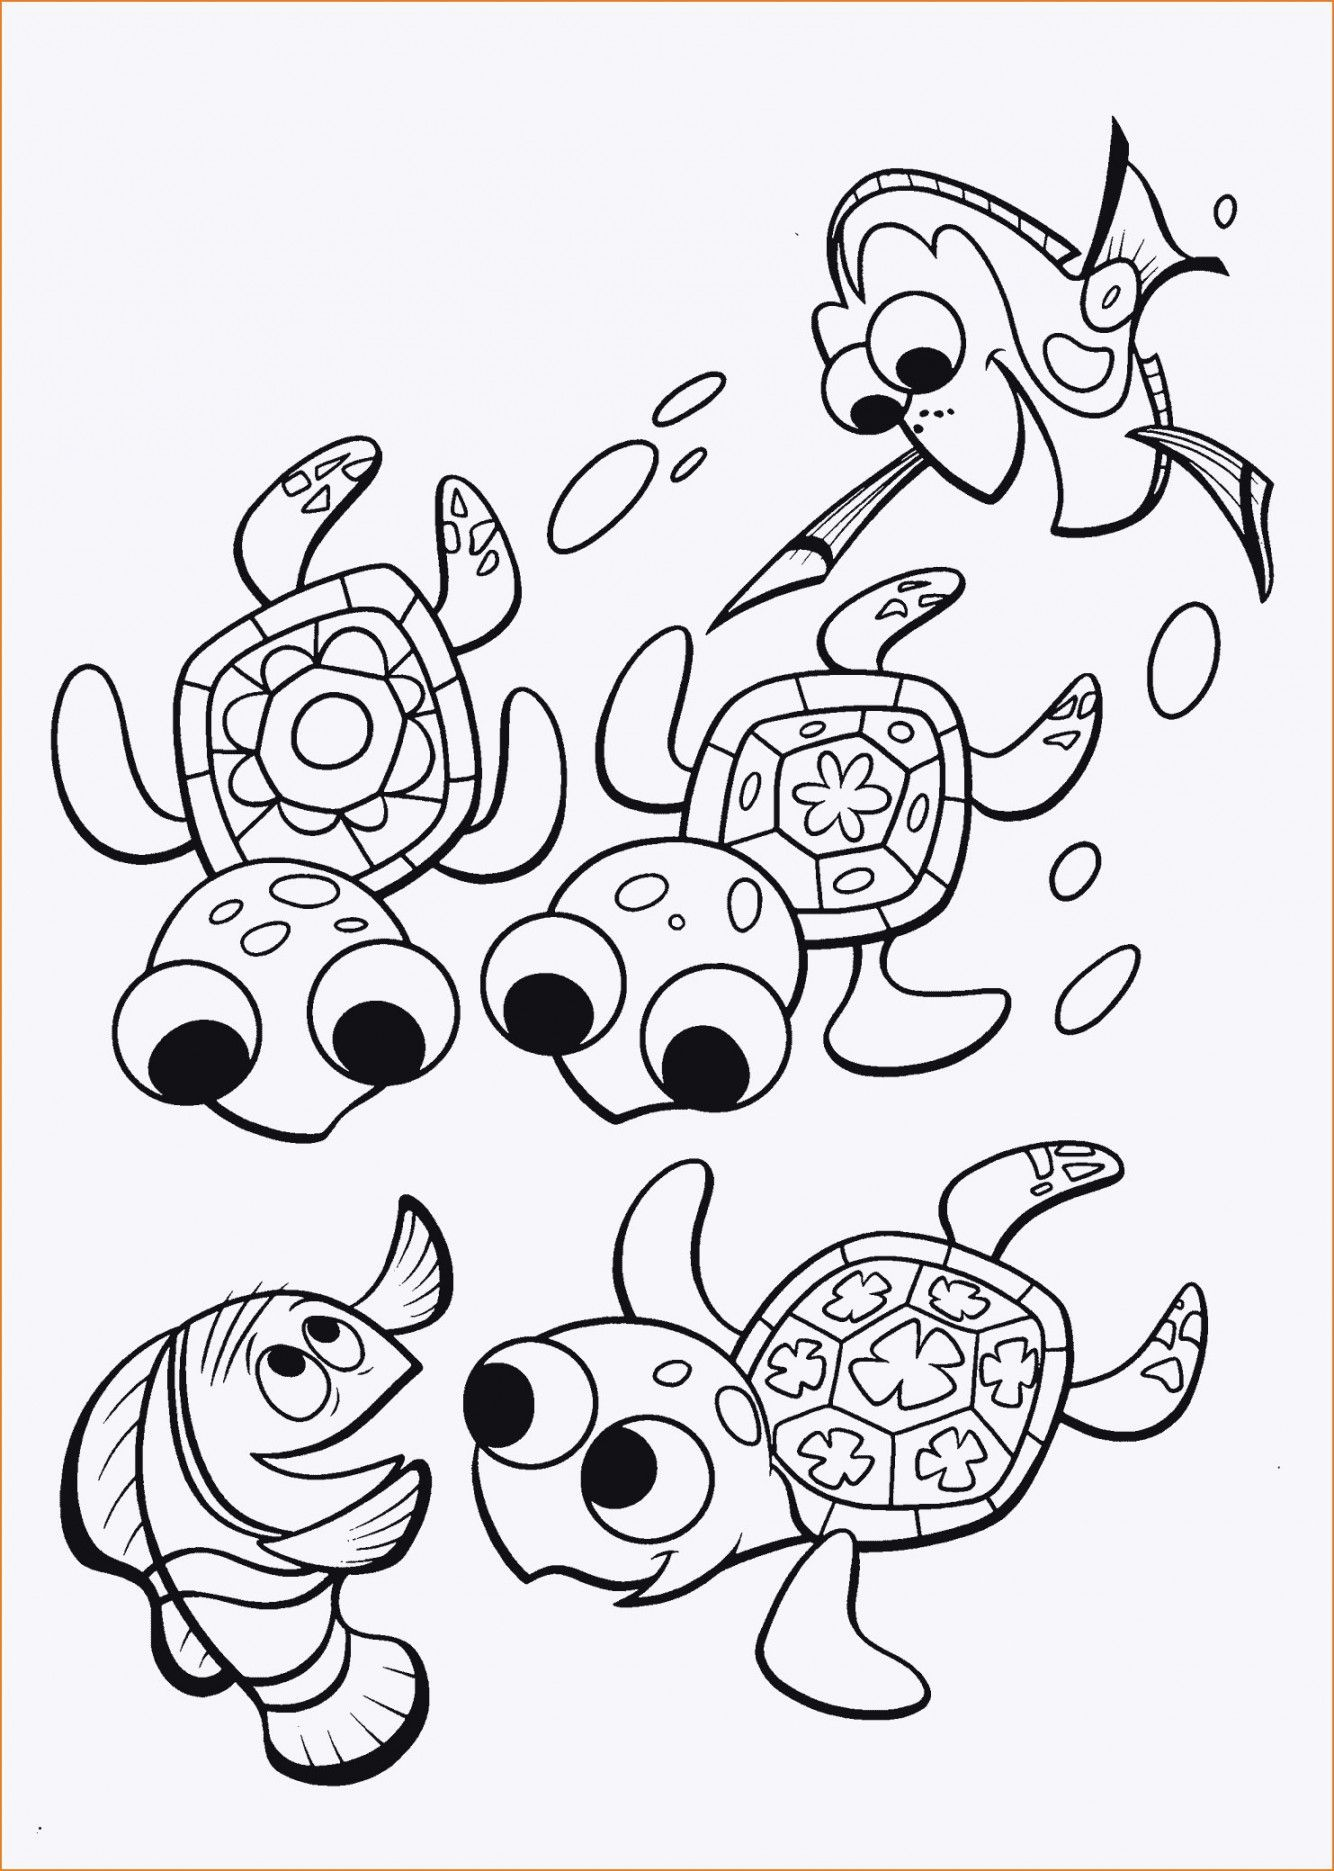 Finding Dory Coloring Pages For Your Children Finding Nemo